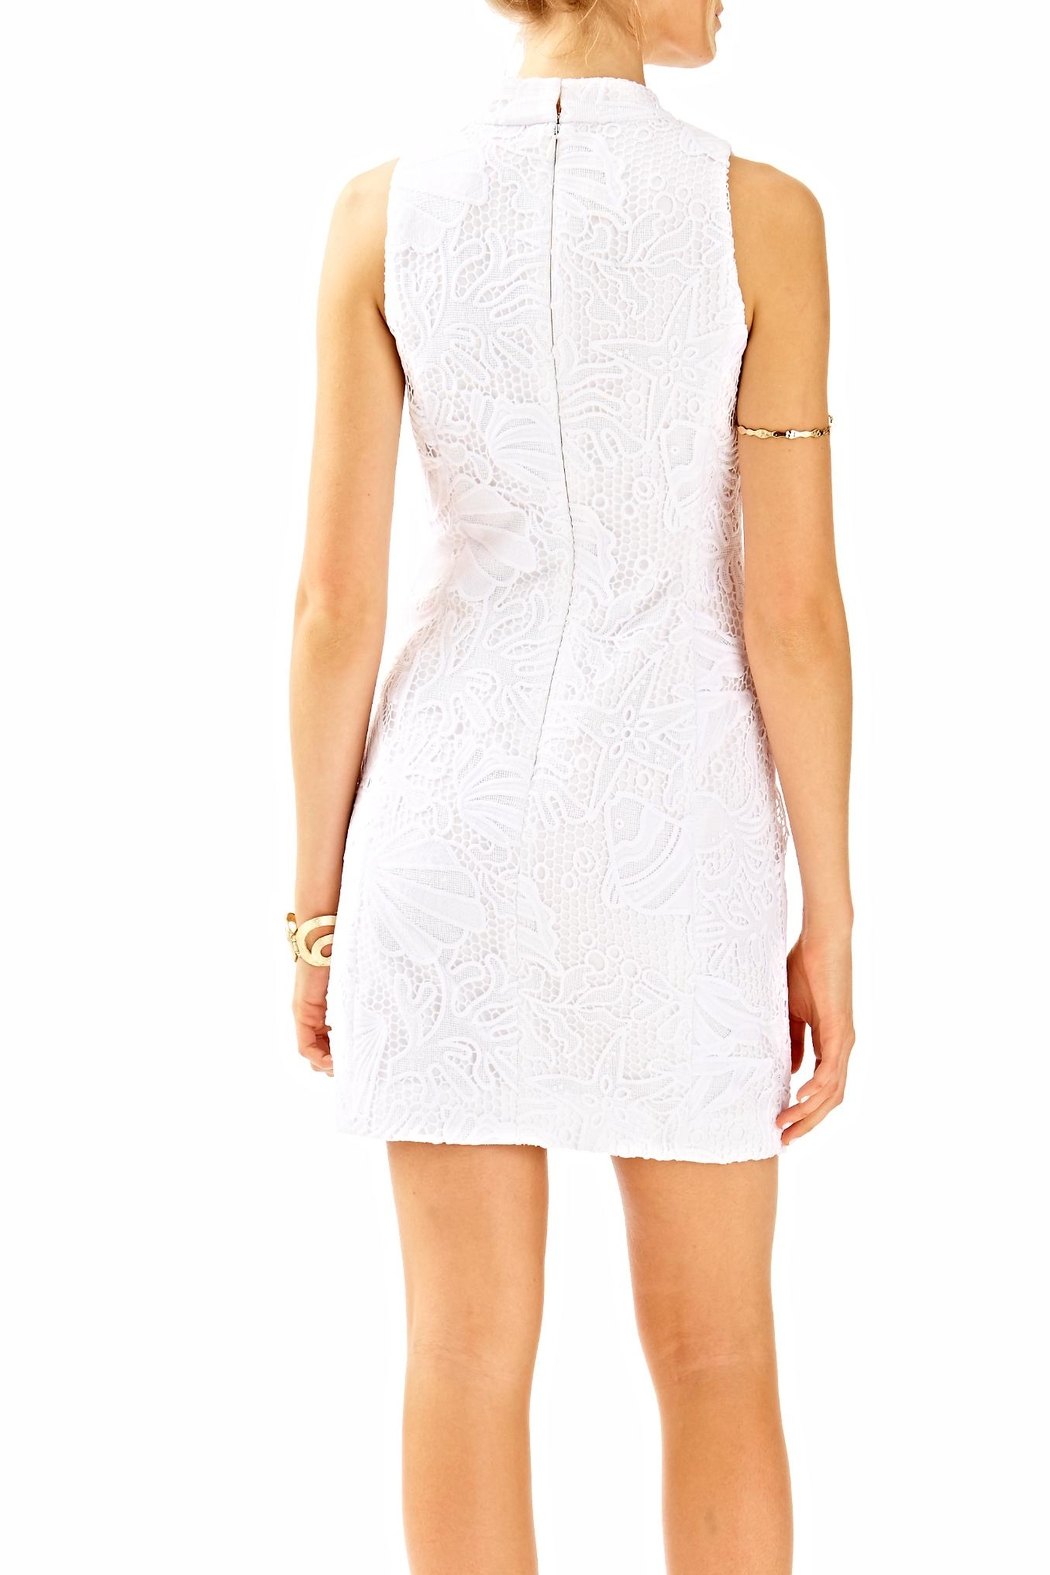 Lilly Pulitzer Alexa Shift Dress - Front Full Image